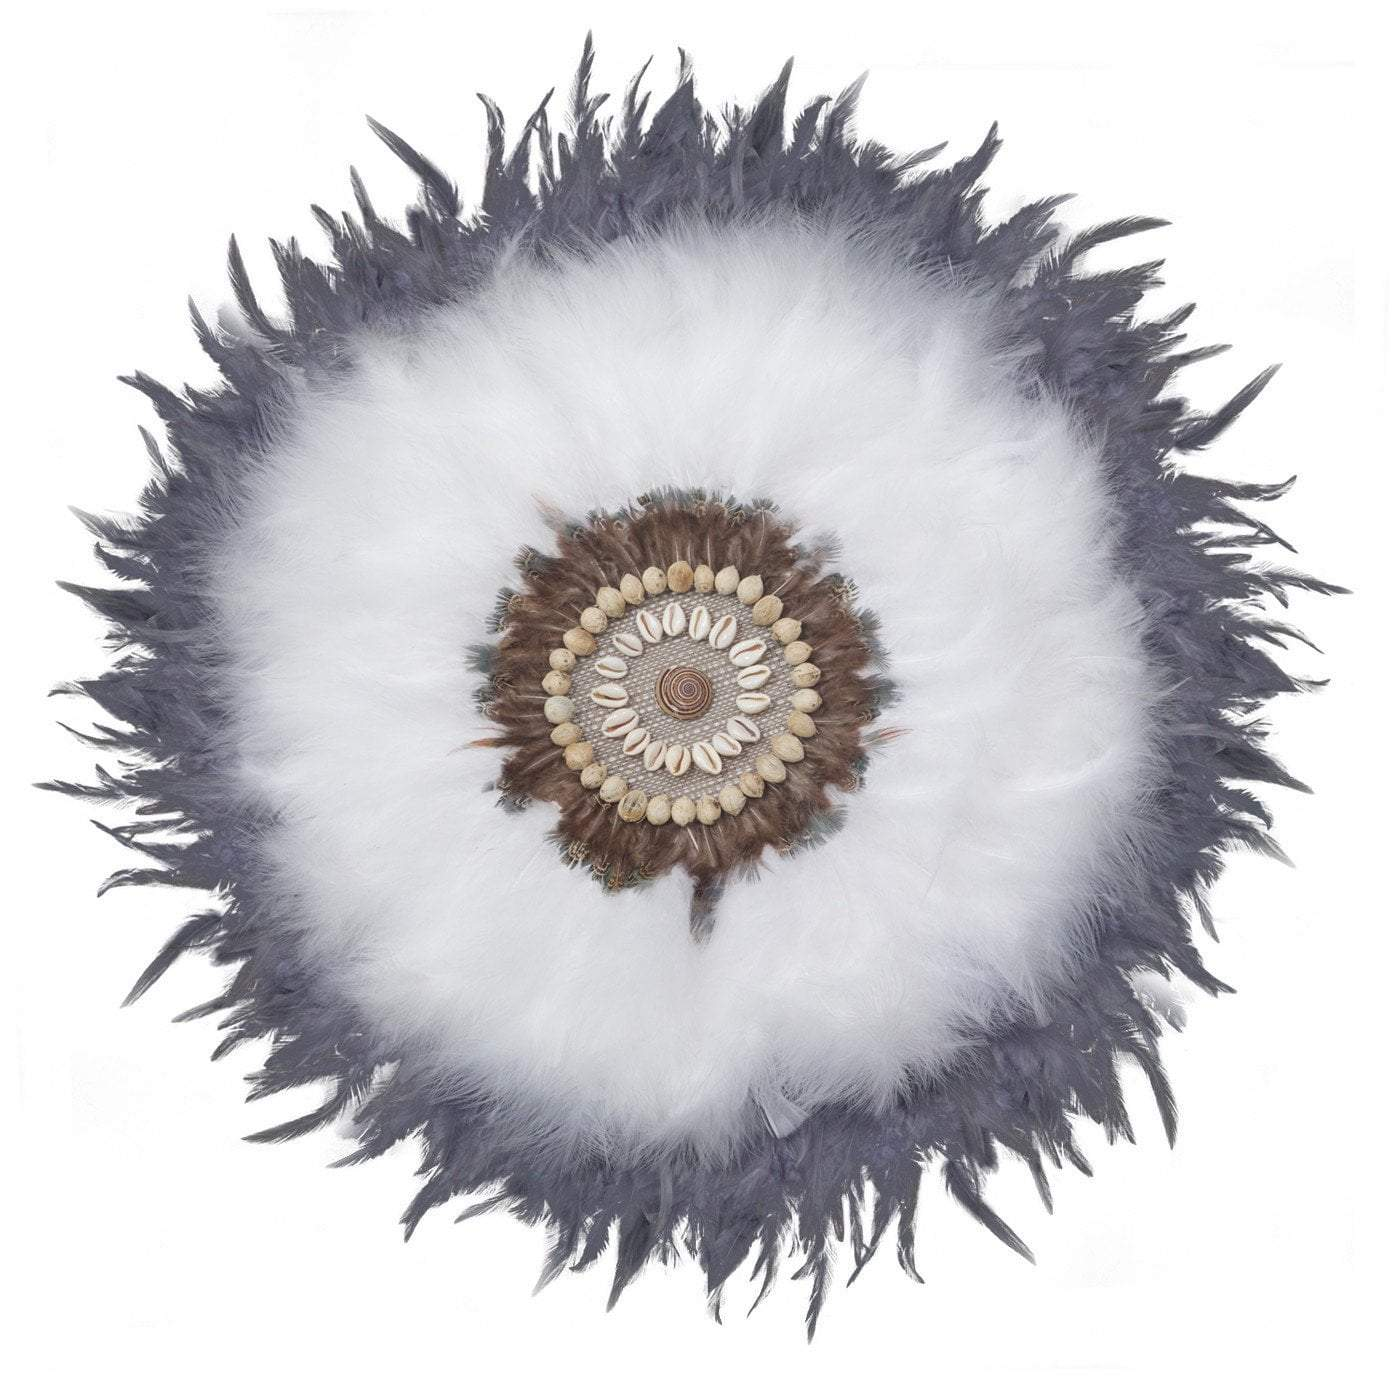 Feather Latope White Artwork 67cm x 85cm